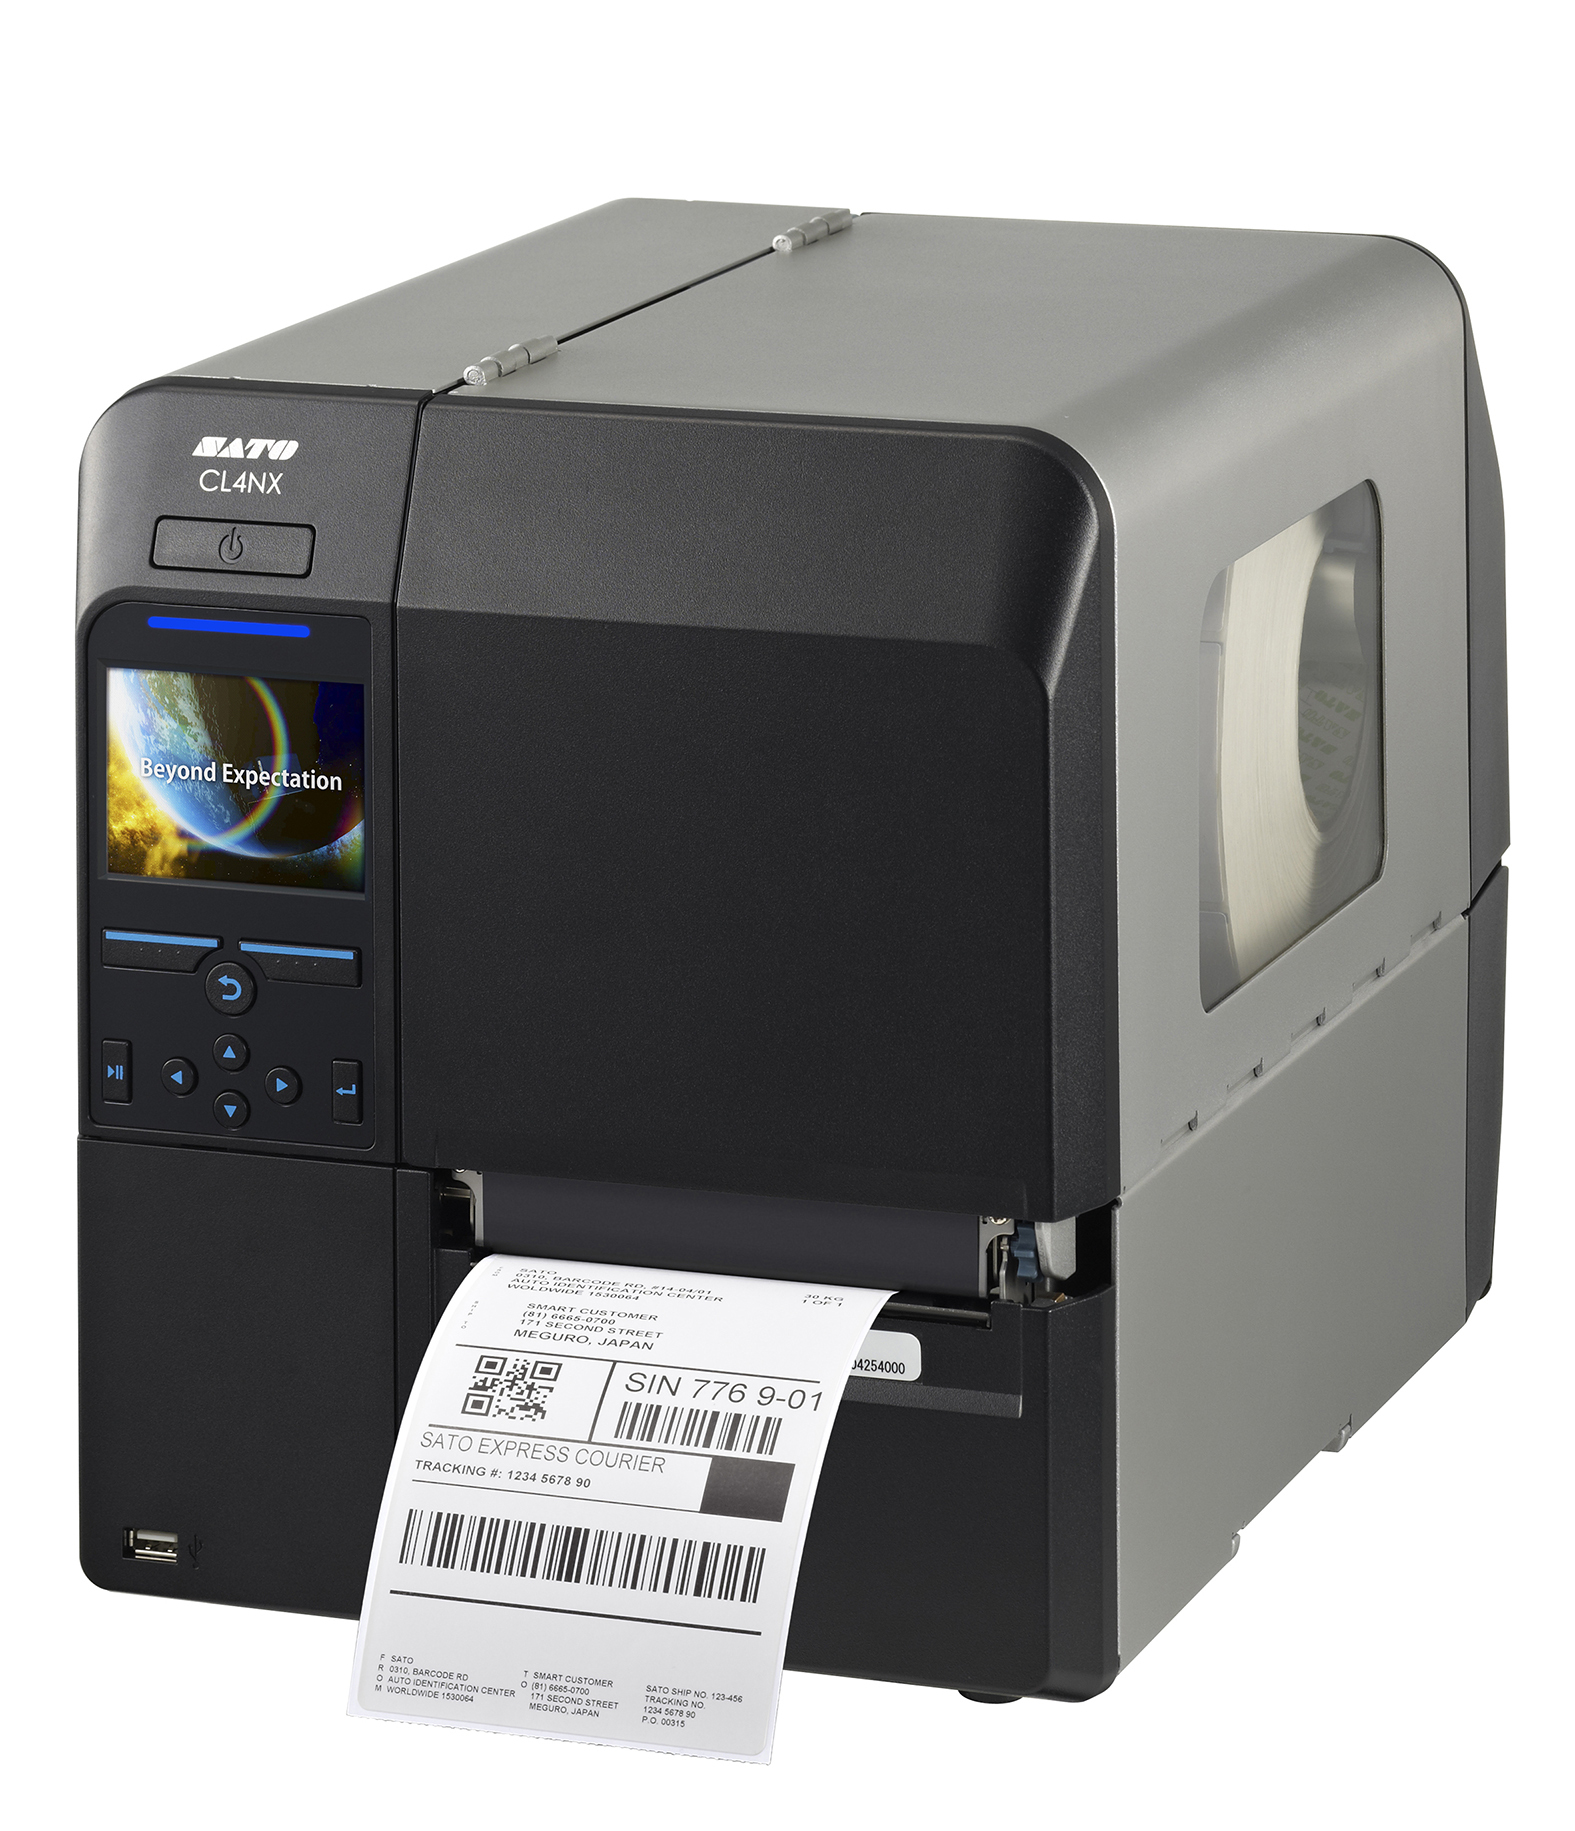 SATO CL4NX printers now natively compatible within Manhattan's WMOS (Photo: Business Wire)